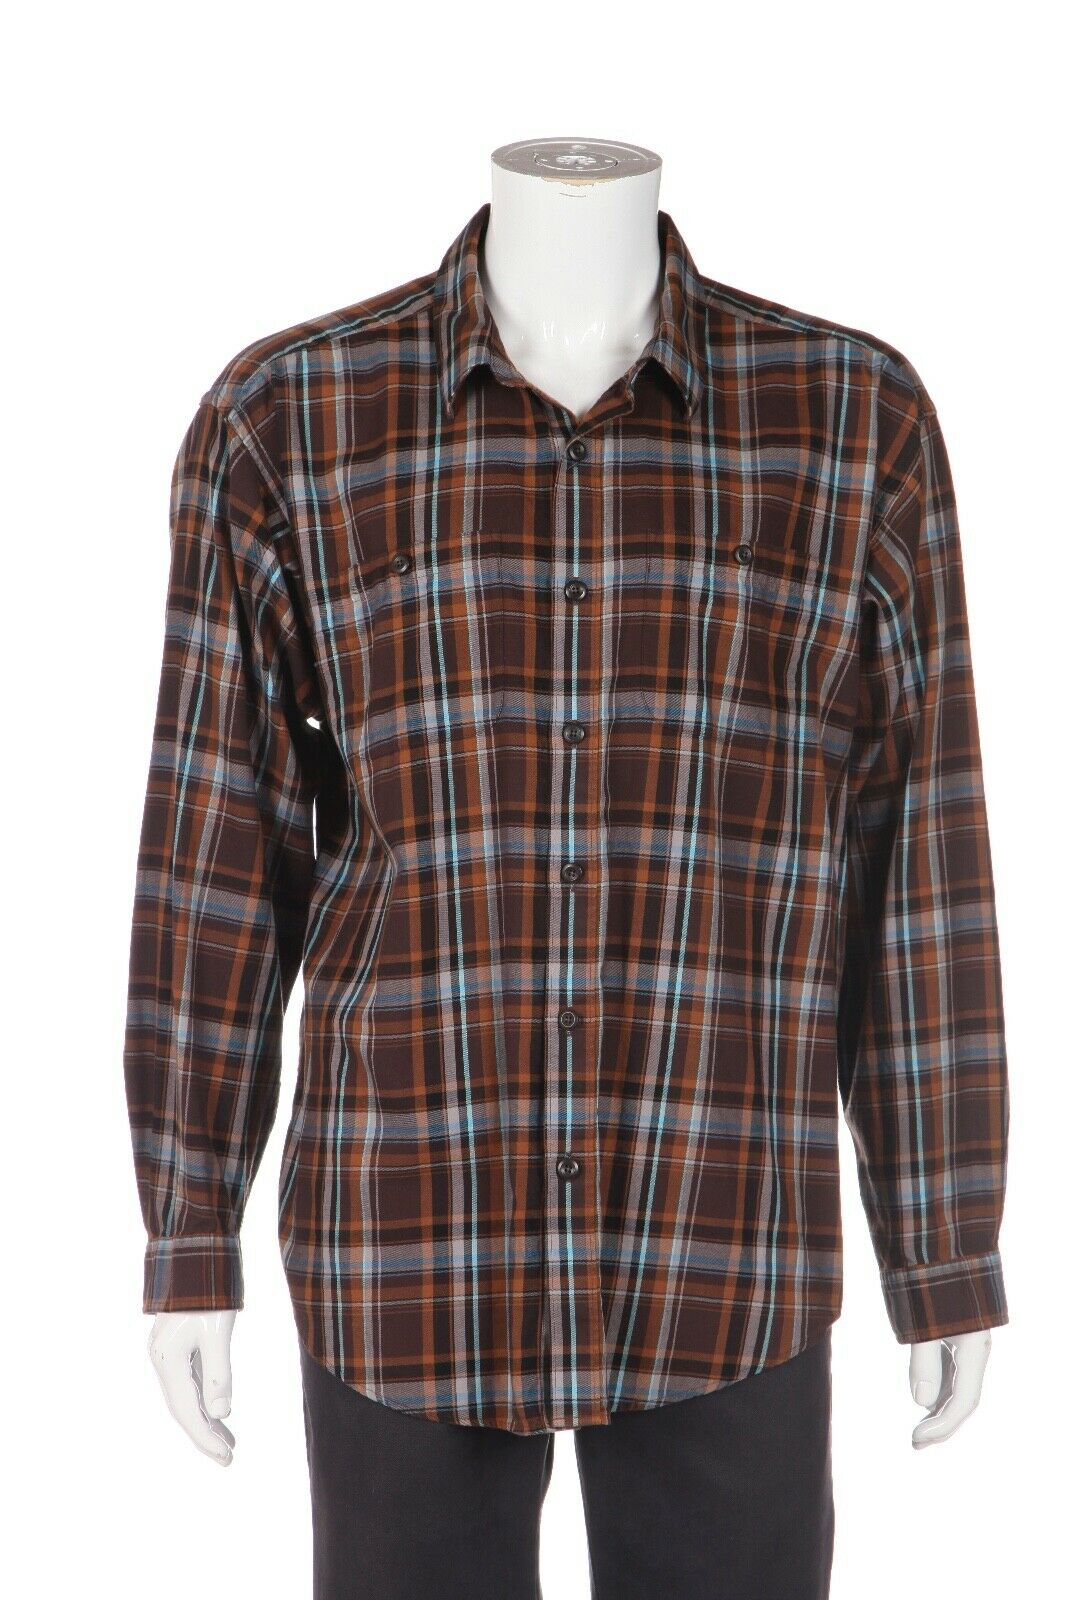 PATAGONIA Men's Plaid Button Down Shirt Size L